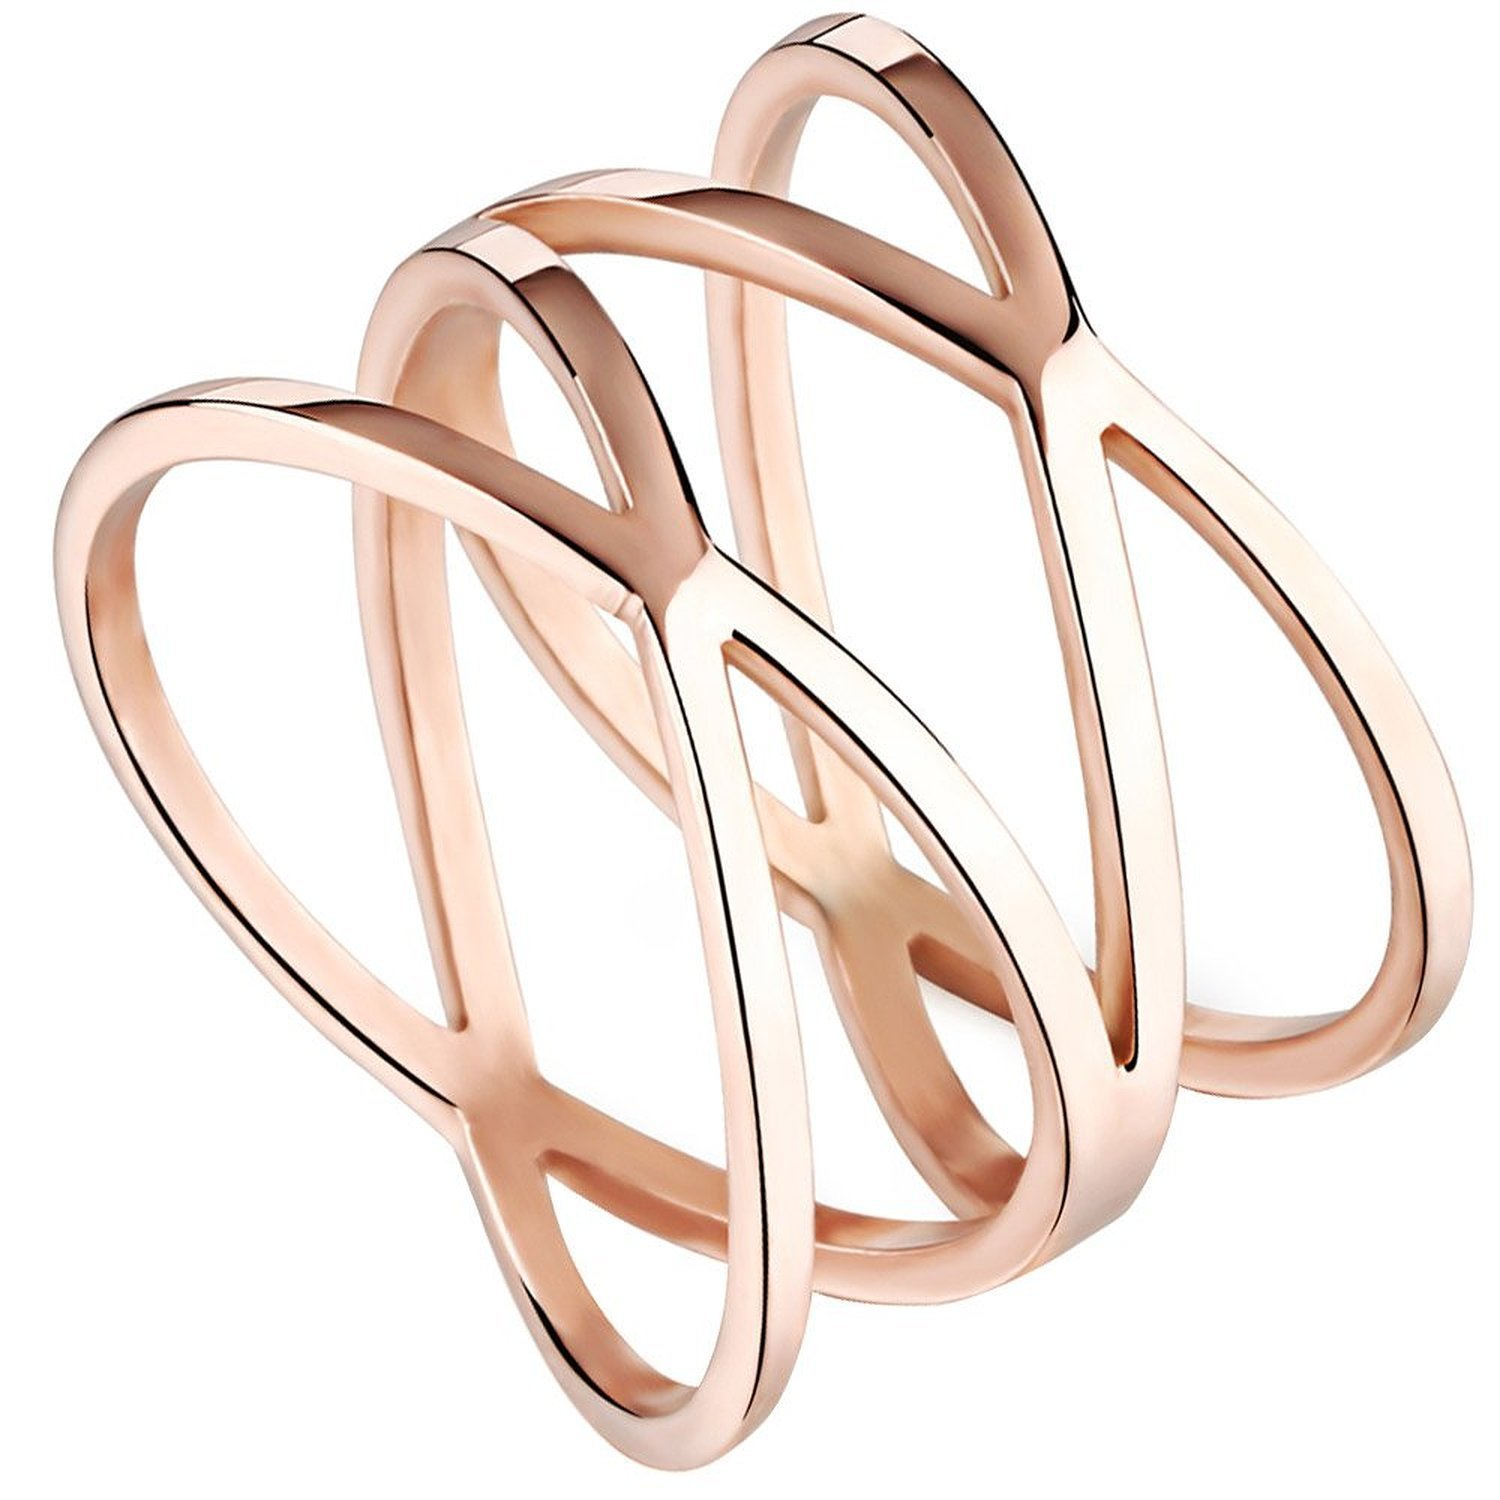 Womens 14MM Rose Gold Tone Stainless Steel Double X Criss Cross Infinity Ring Engagement Wedding Lady Girls Band Blowin